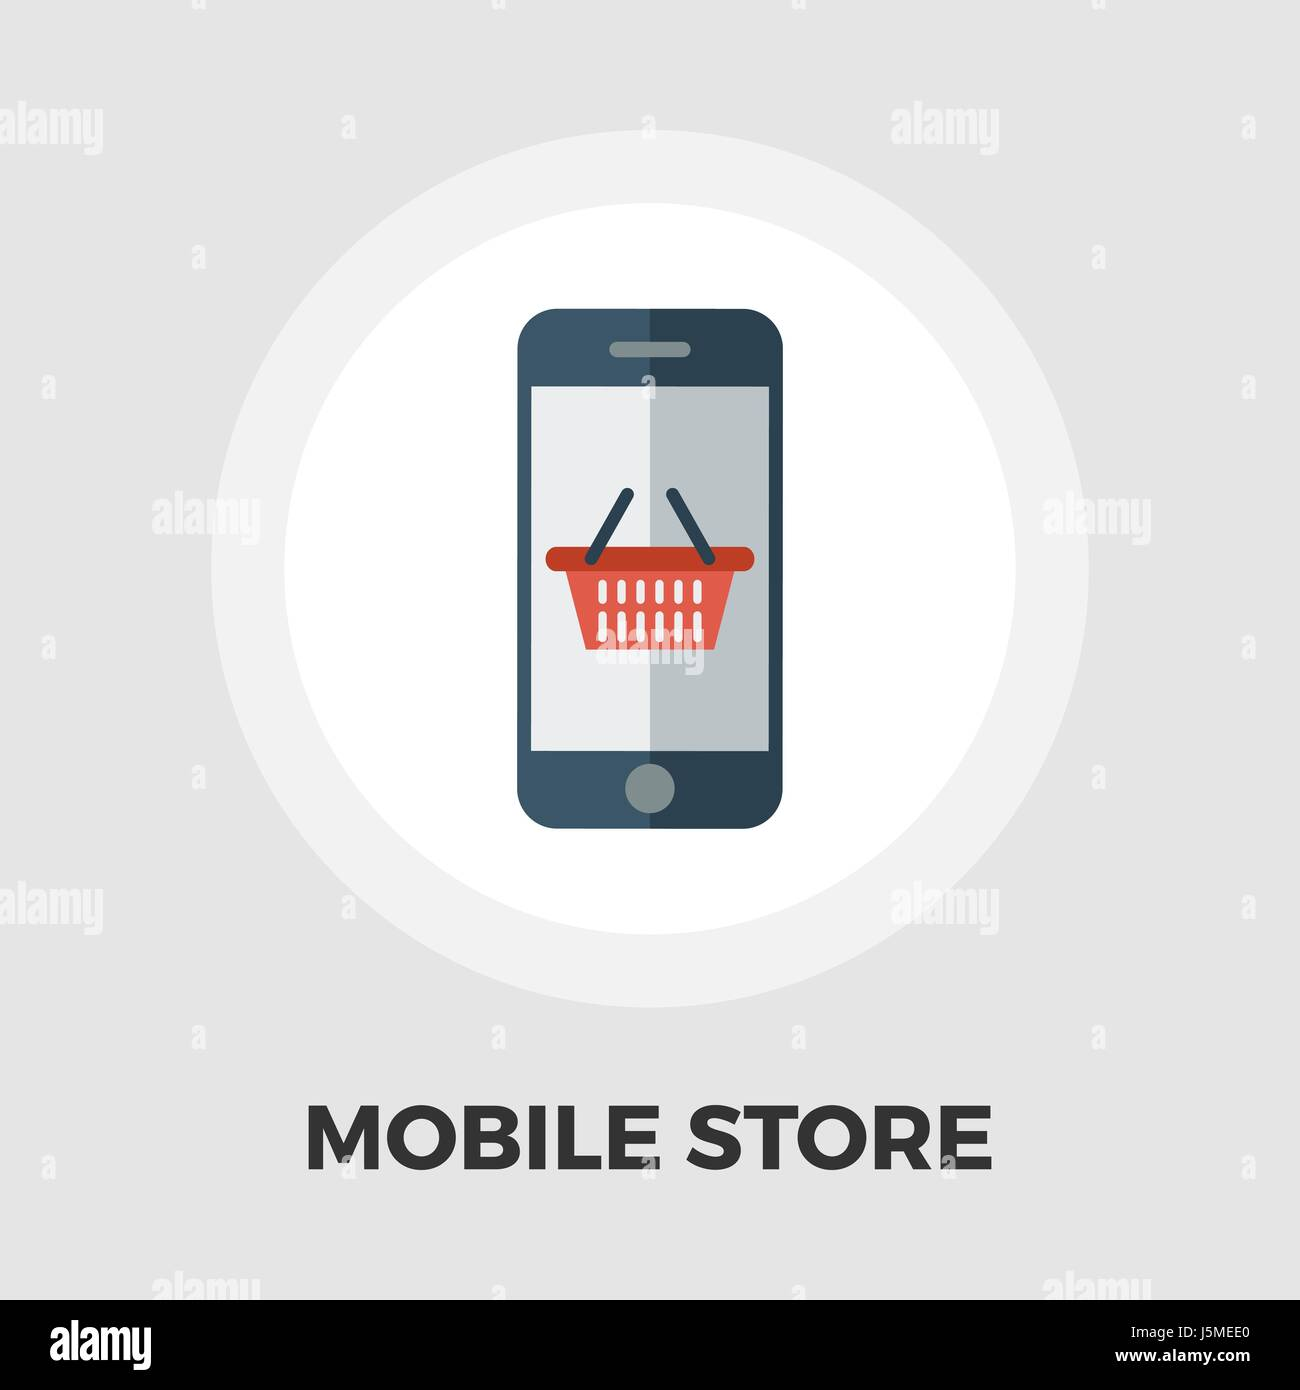 Mobile store icon vector. Flat icon isolated on the white background. Editable EPS file. Vector illustration. - Stock Vector